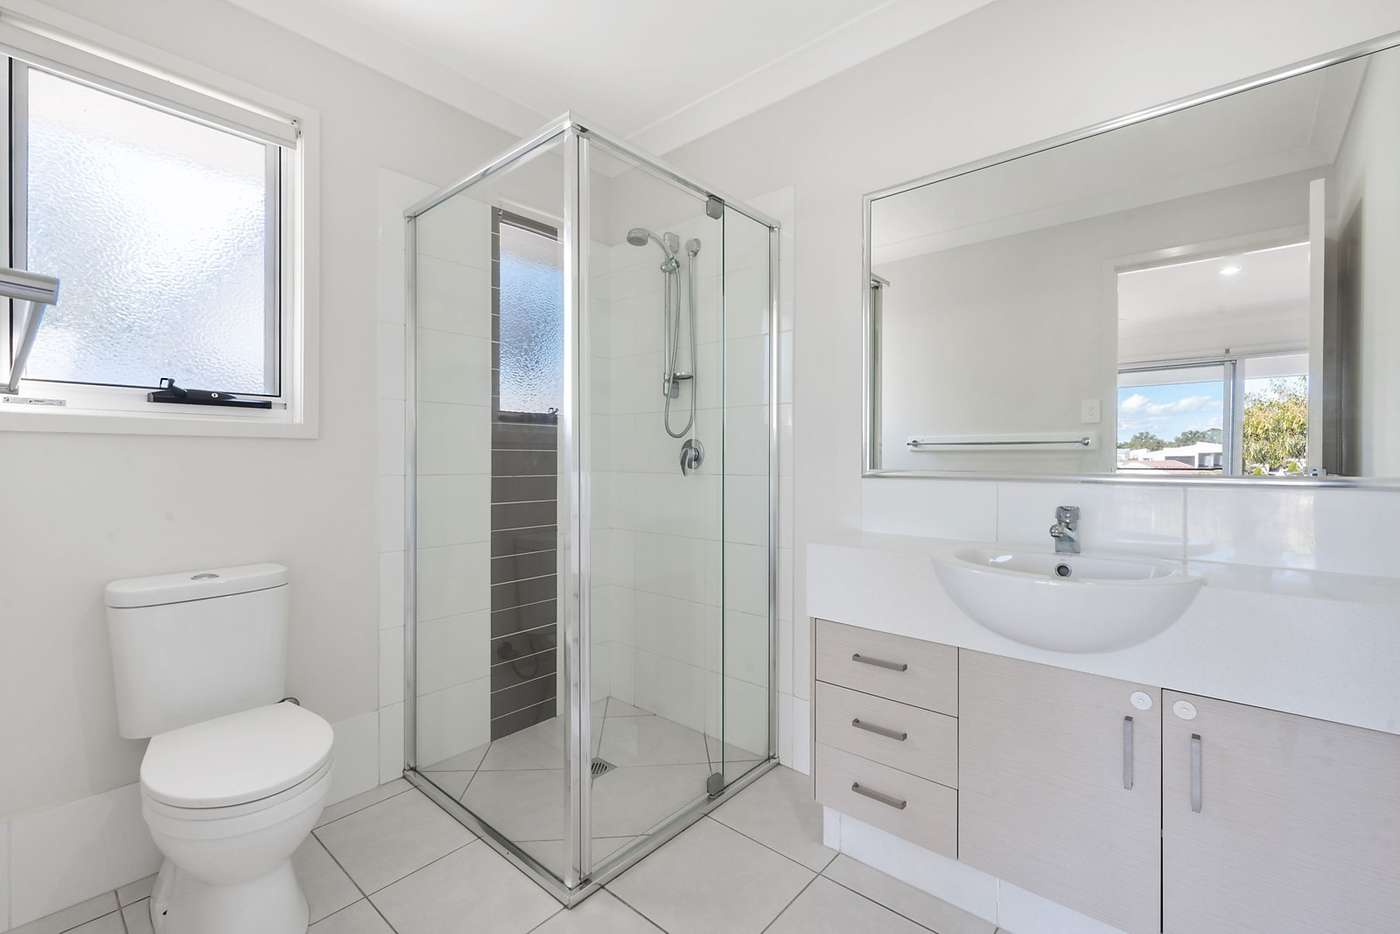 Sixth view of Homely house listing, 79 Willow Rise Drive, Waterford QLD 4133